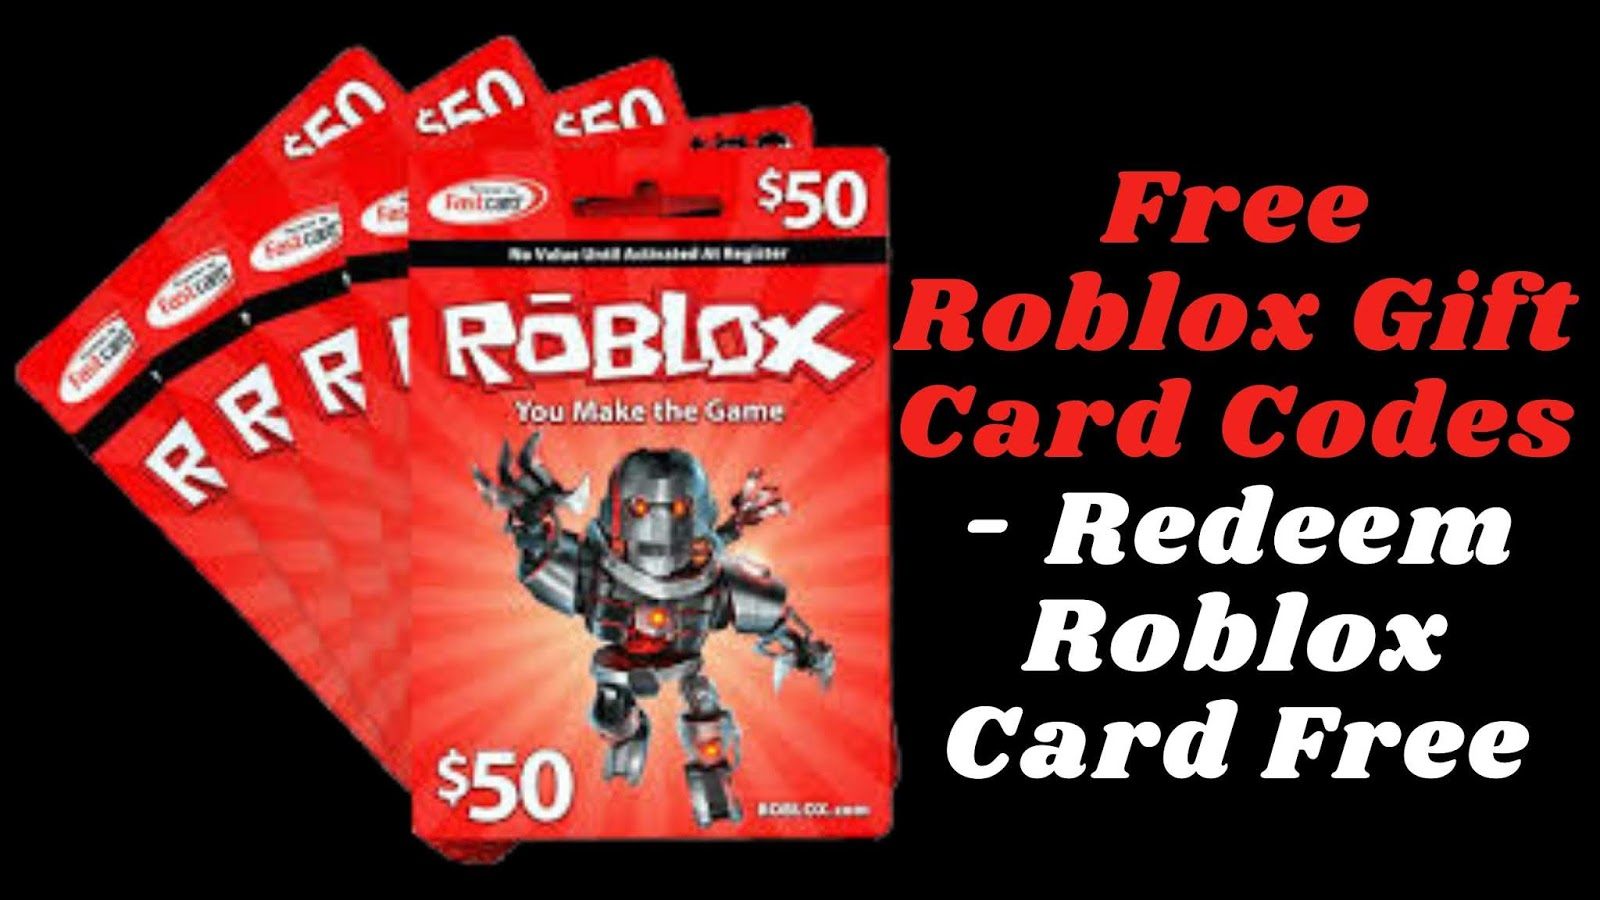 Roblox Robux Gift Cards Codes Free Gift Cards Free Roblox Gift Card Codes Redeem Roblox Card Free